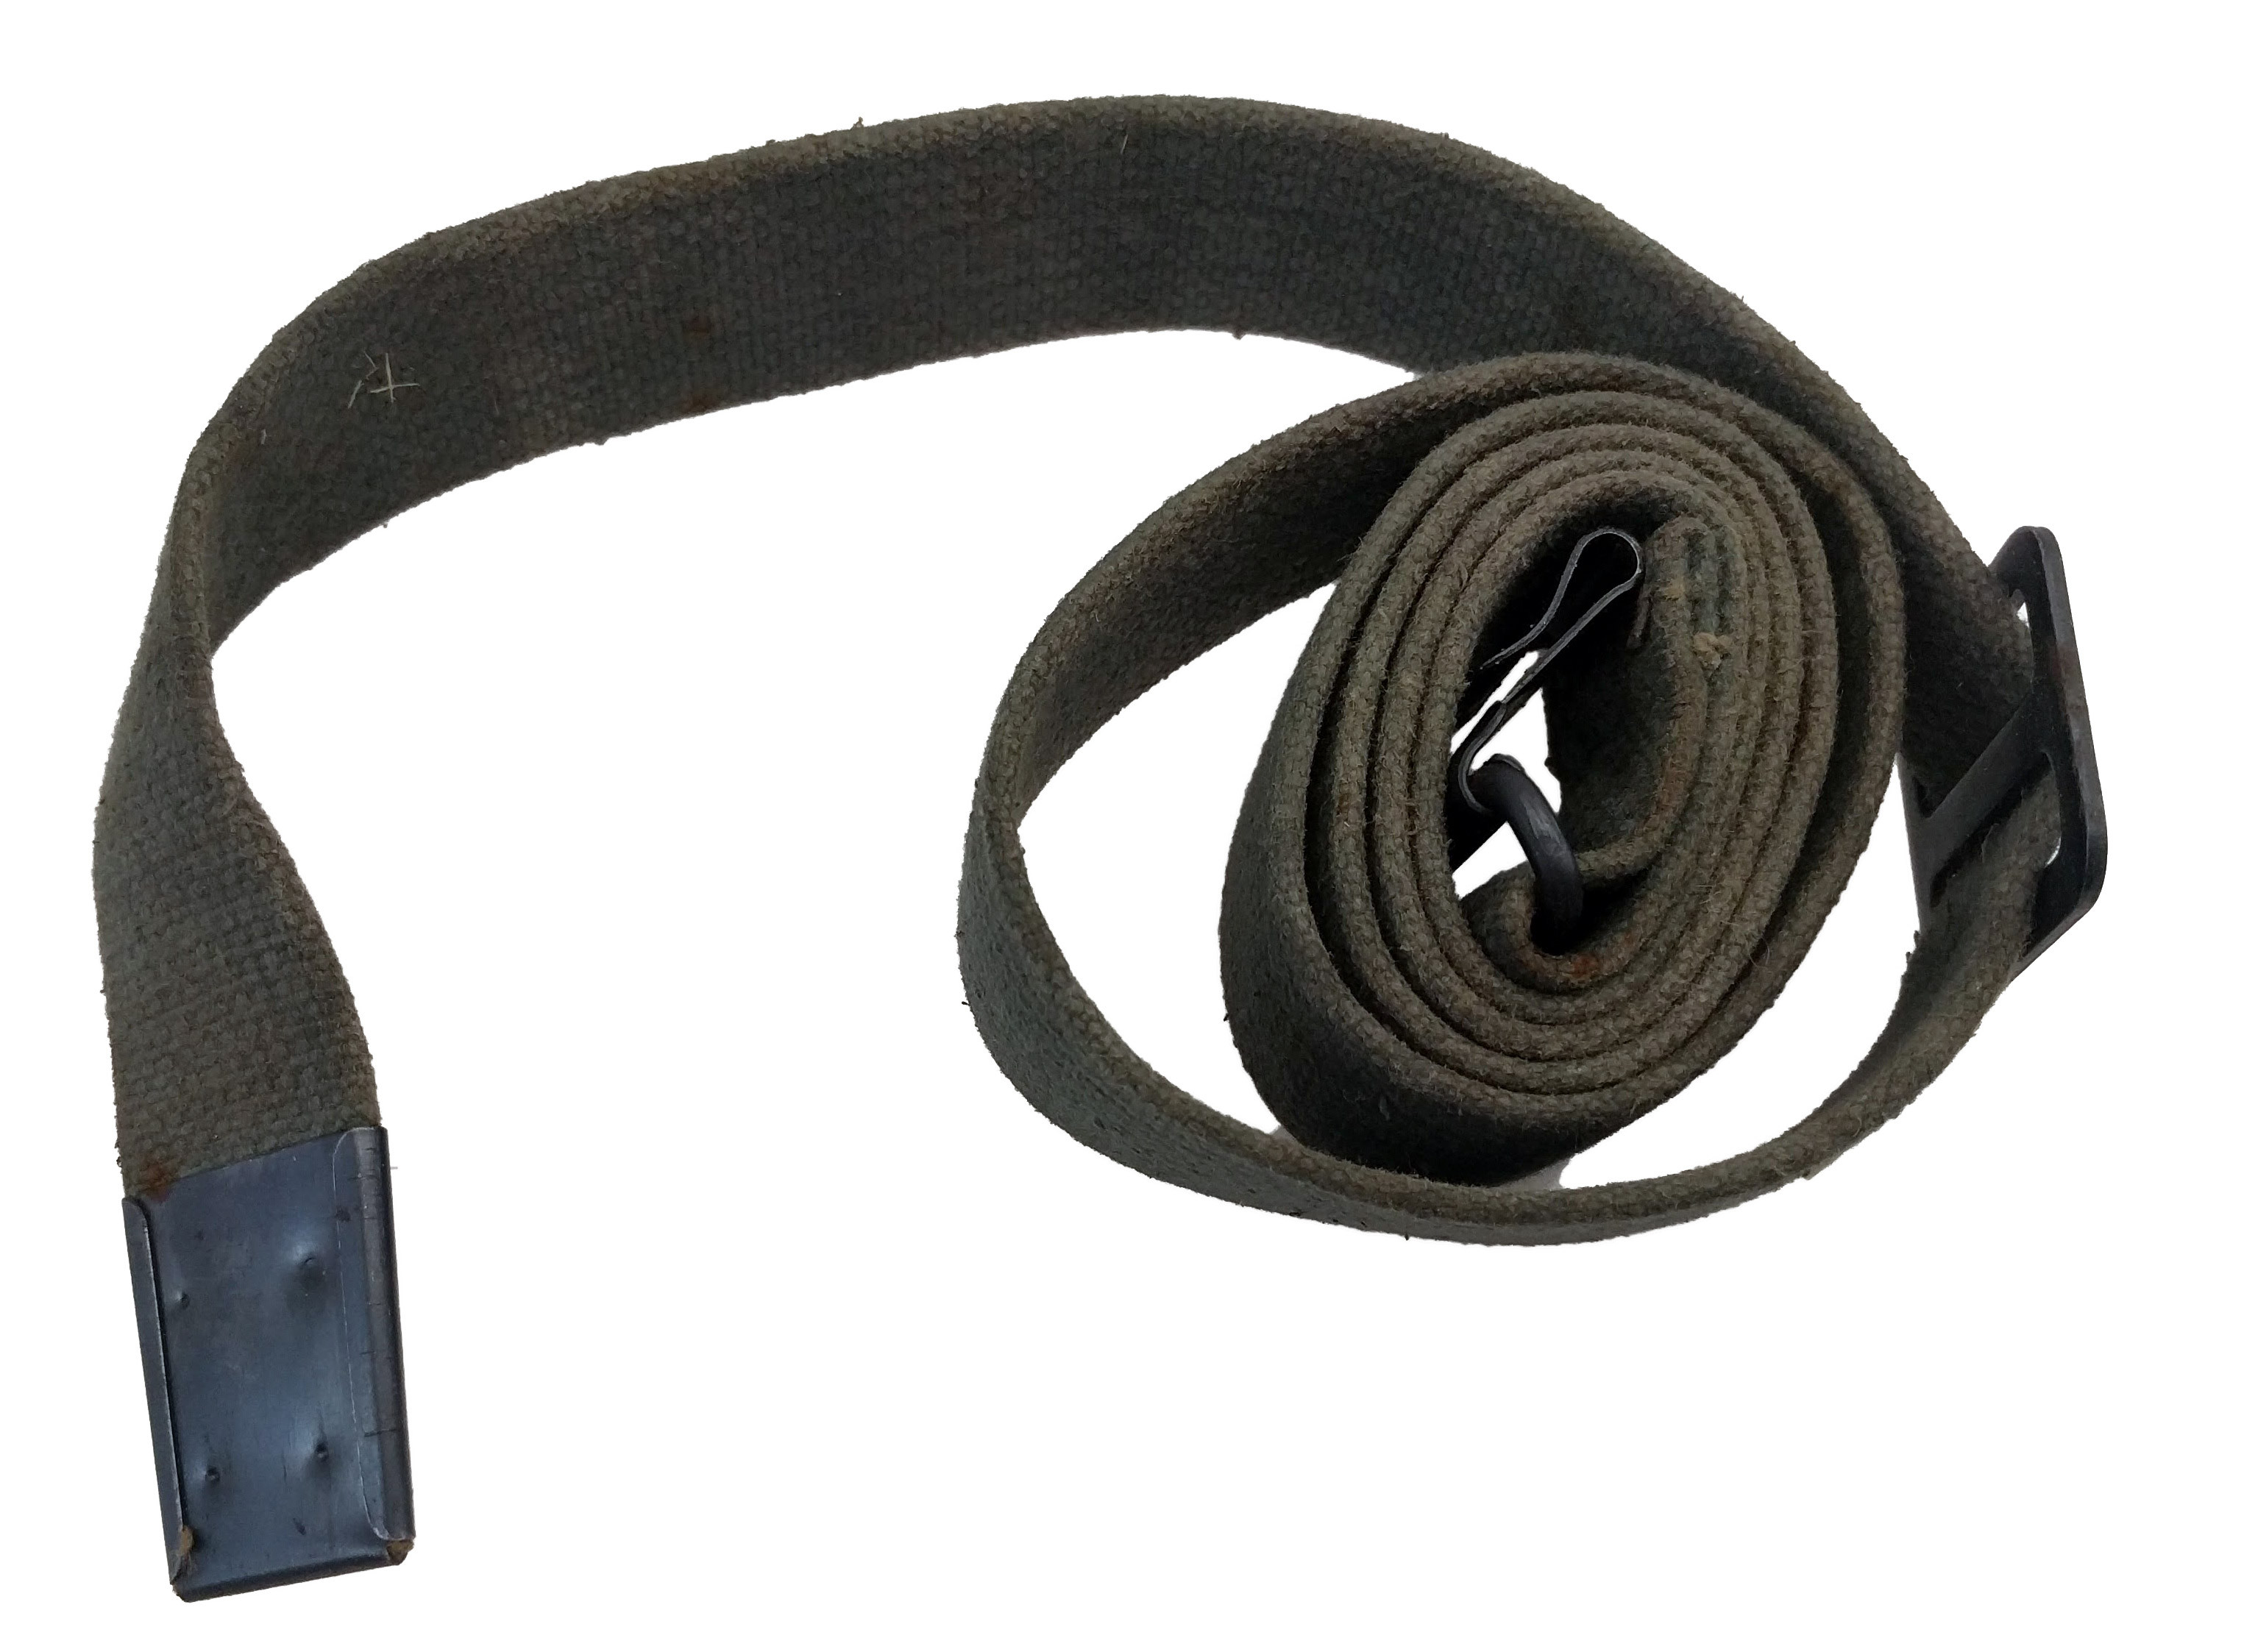 Canvas Yugo SKS Sling